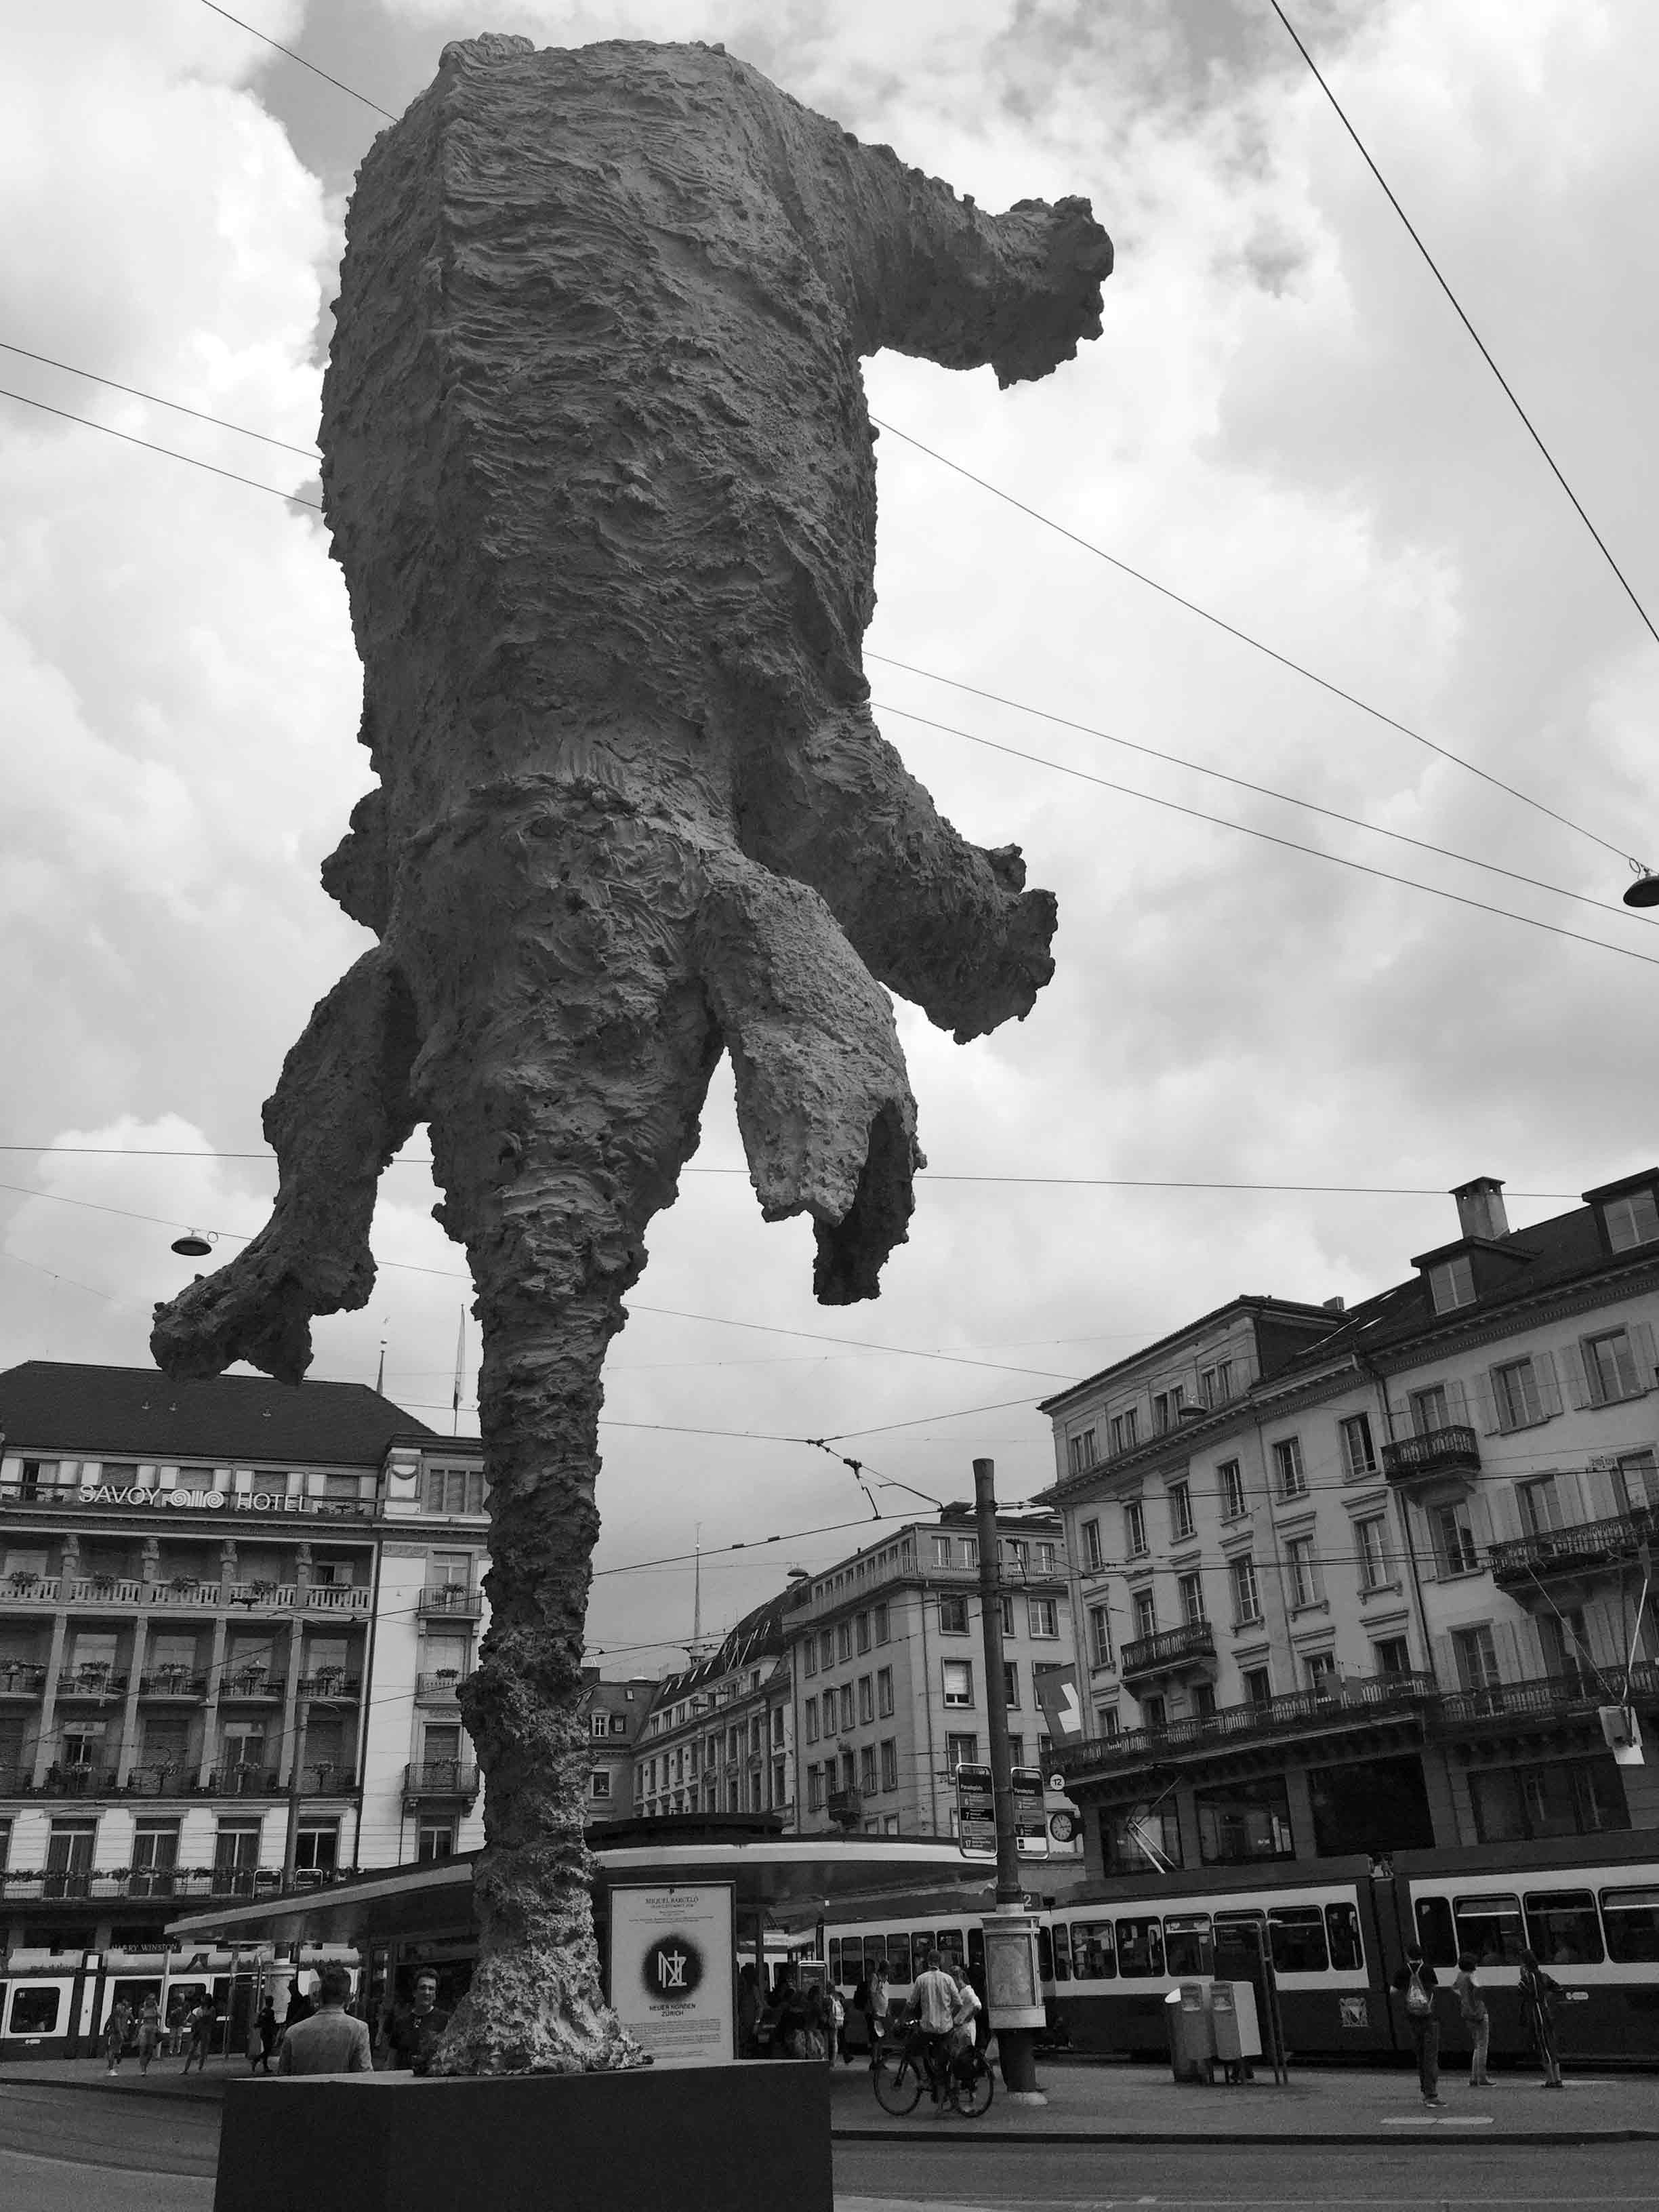 Sculpture GRAN ELEFANDRET, by Miquel Barceló, installed at the Paradeplatz in Zurich by Tobias Mueller Modern Art AG